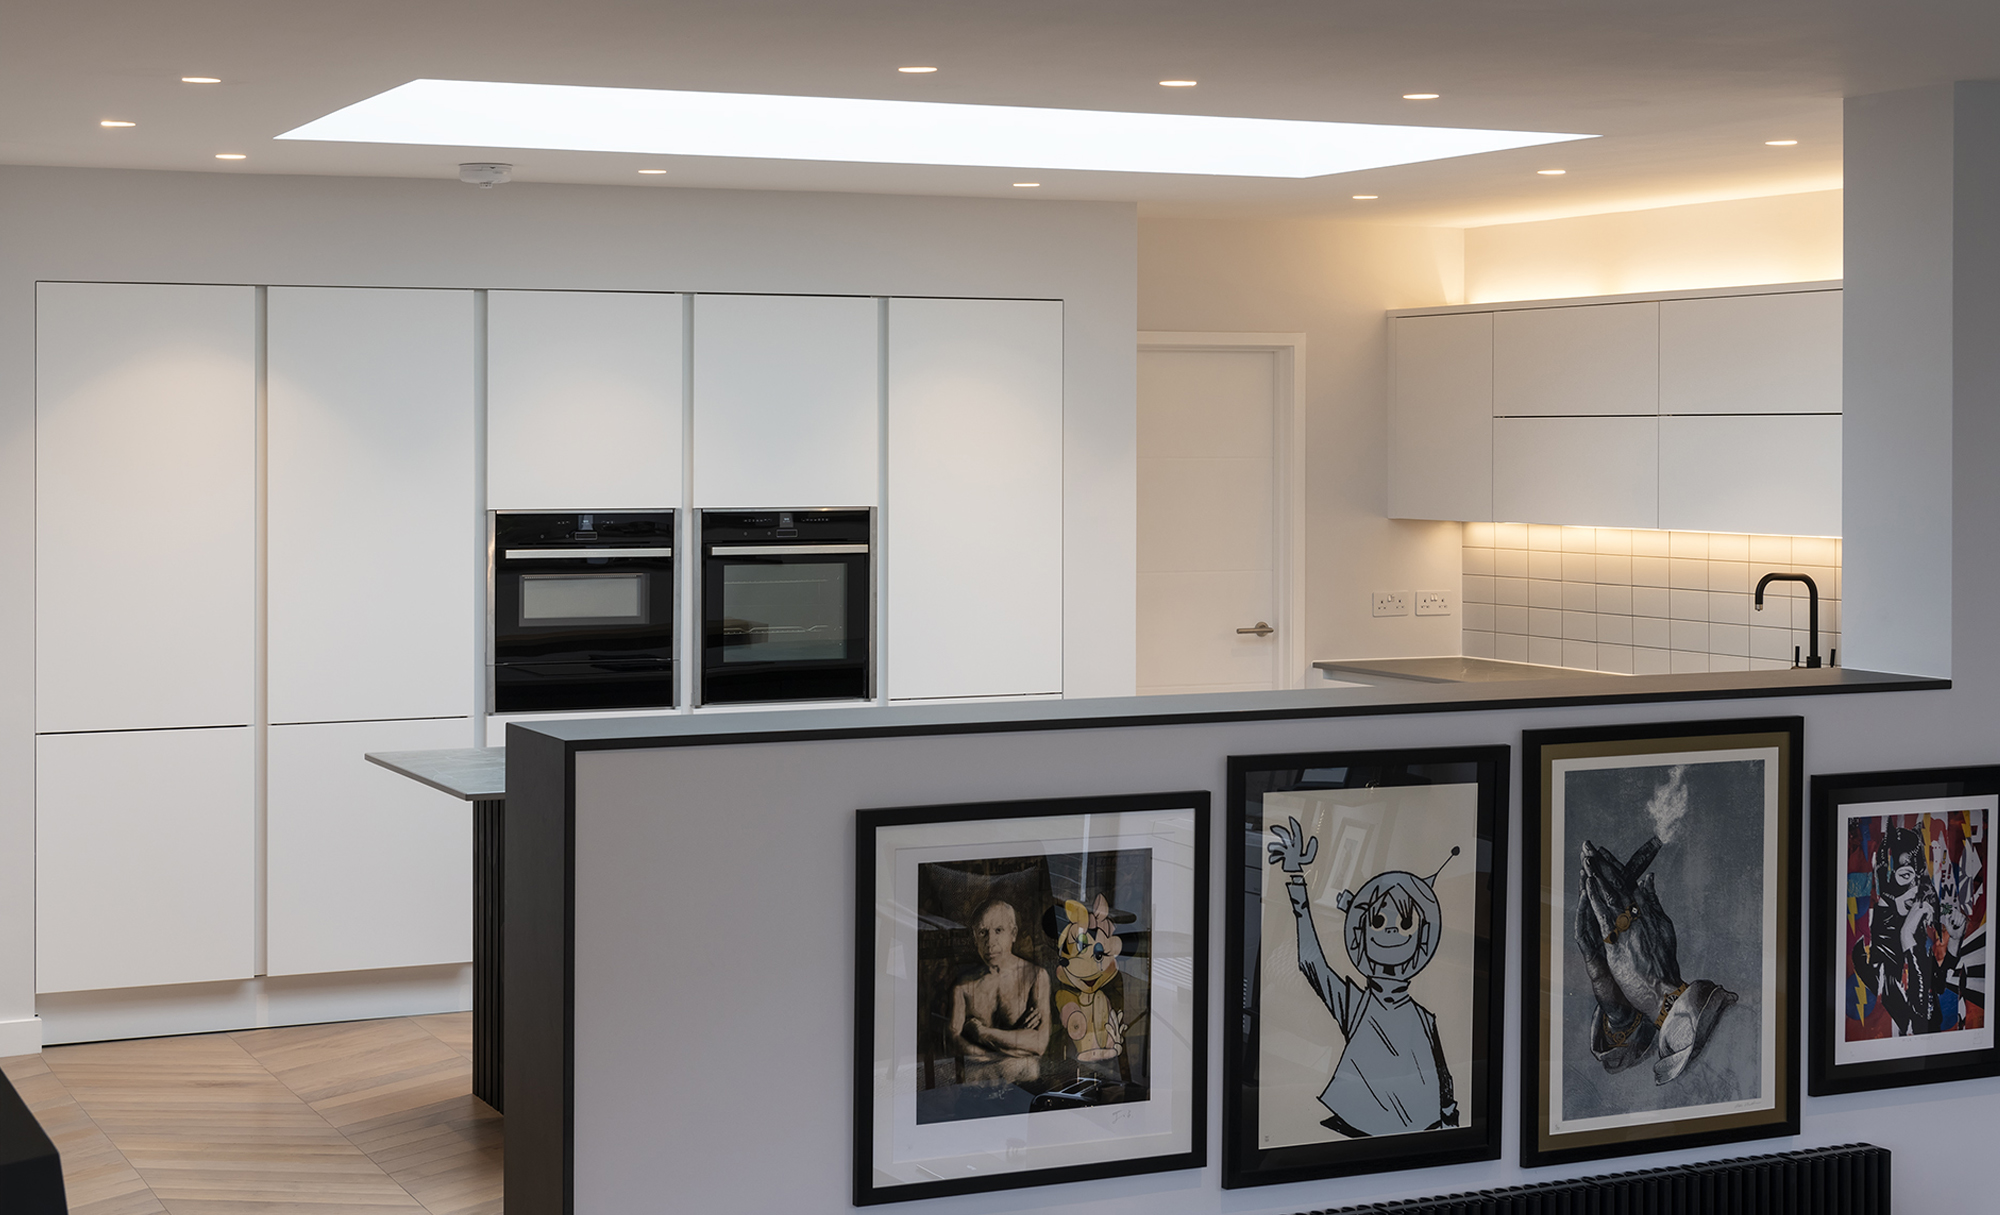 Portishead Zola Matte Almost Black & White Kitchen for a home in North Somerset 2